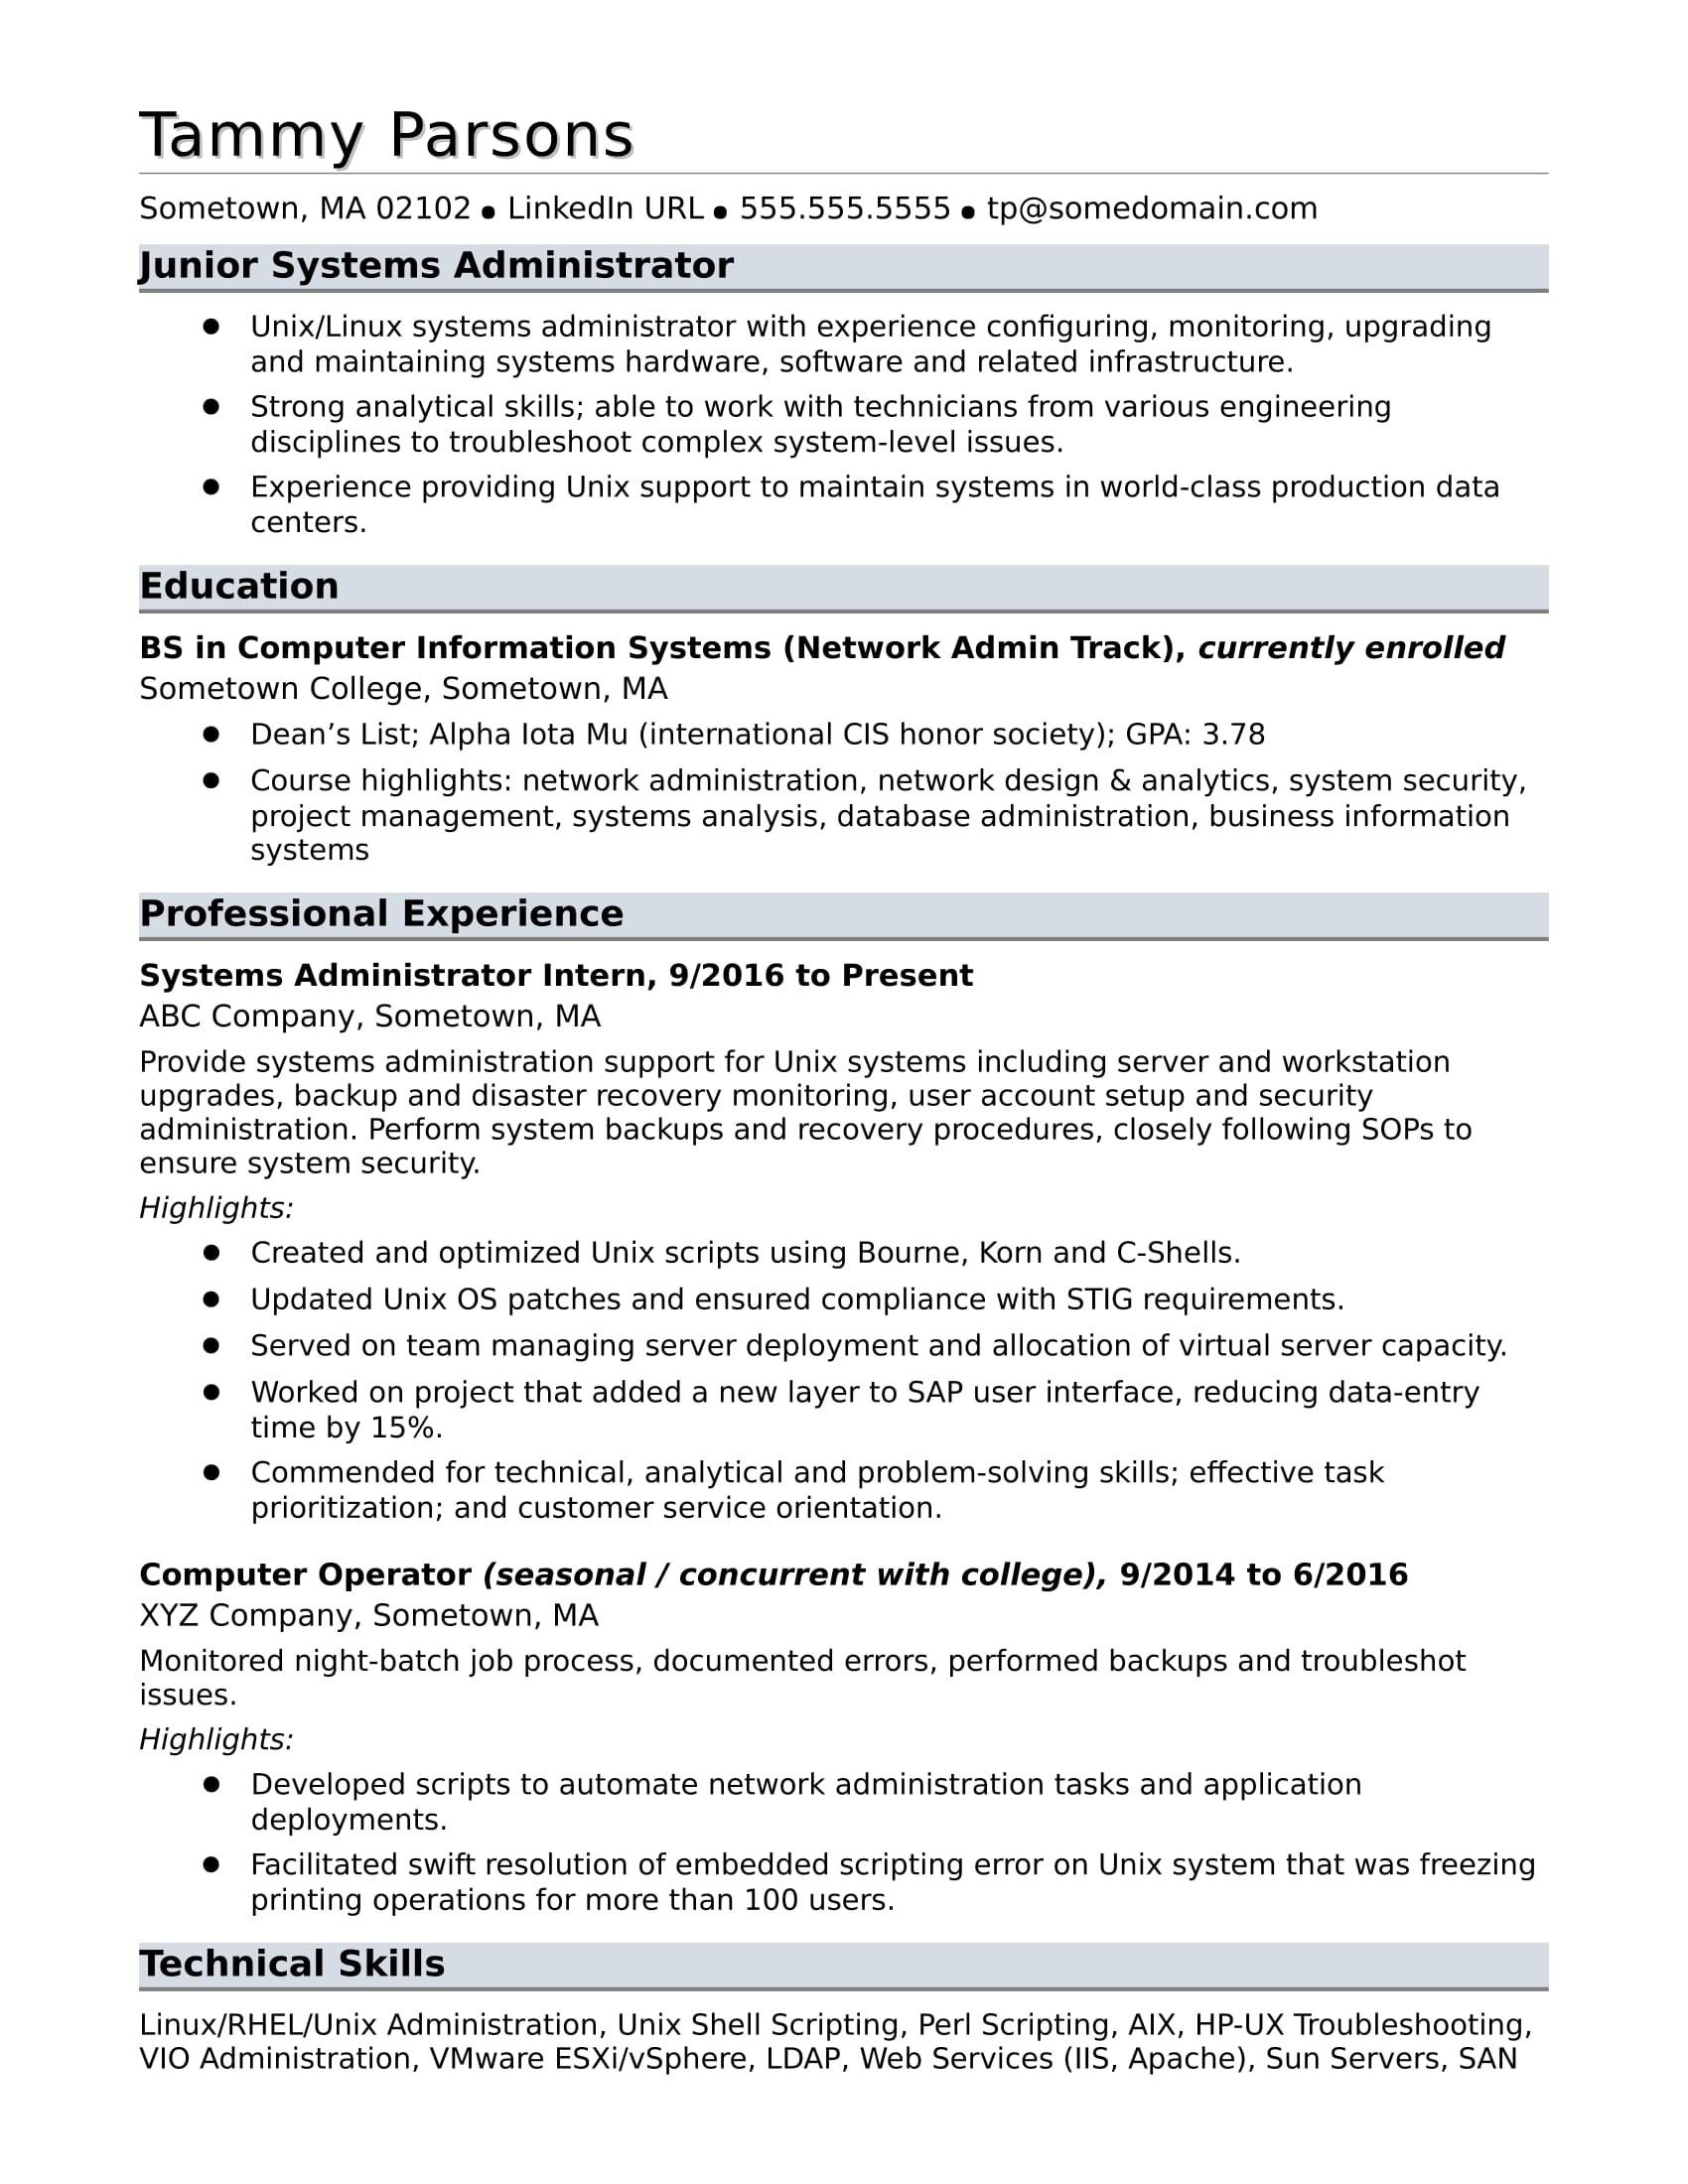 Sample Resume For An Entry Level Systems Administrator